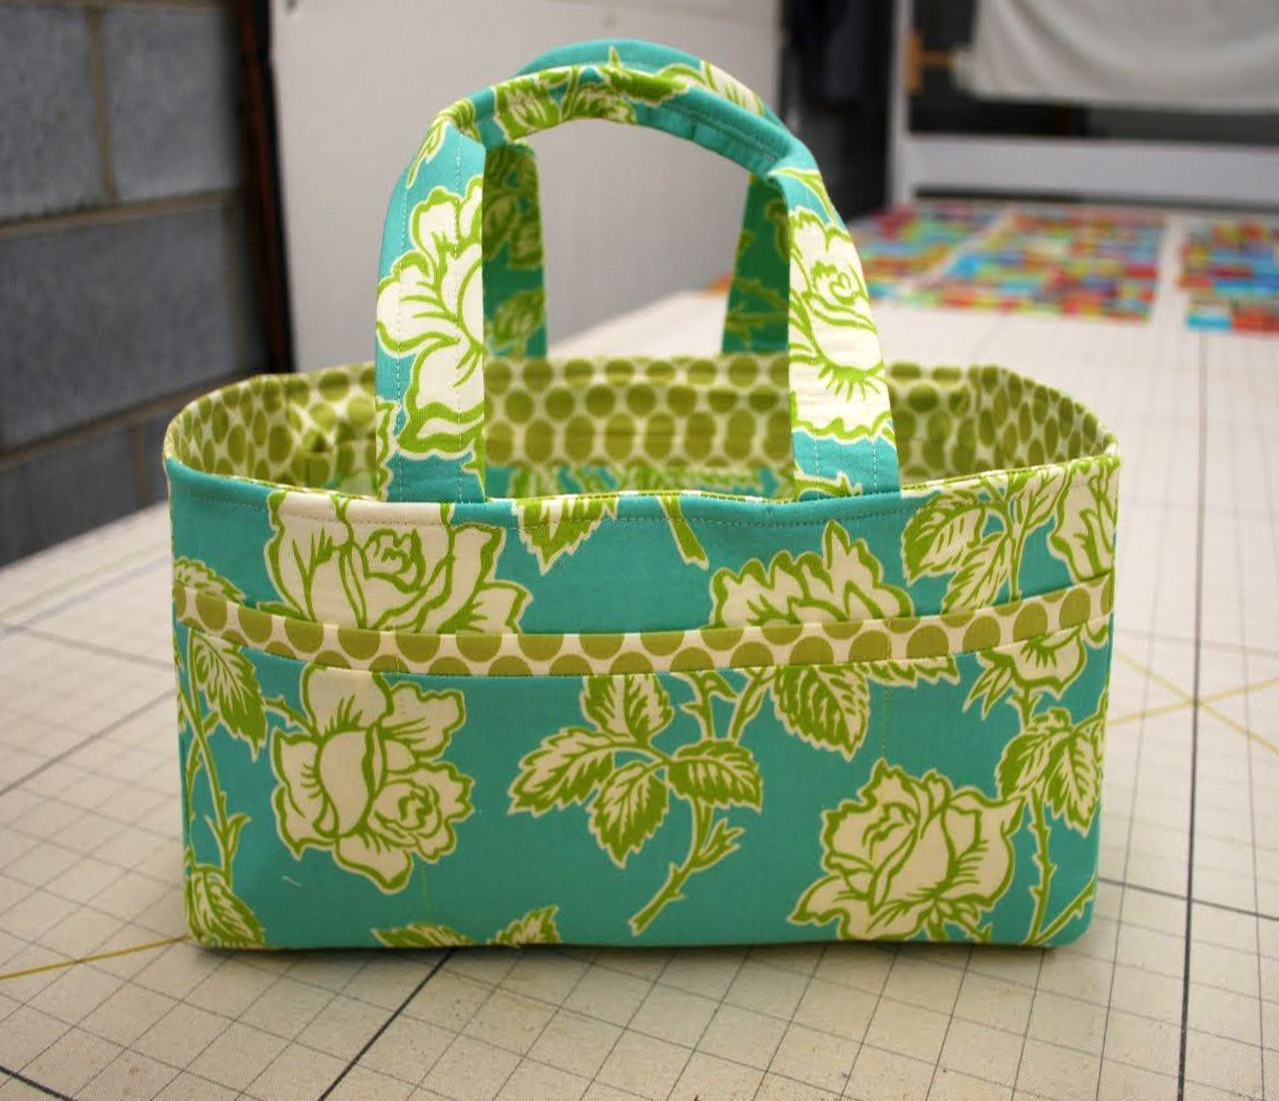 Sewing Caddy Bag Tutorial